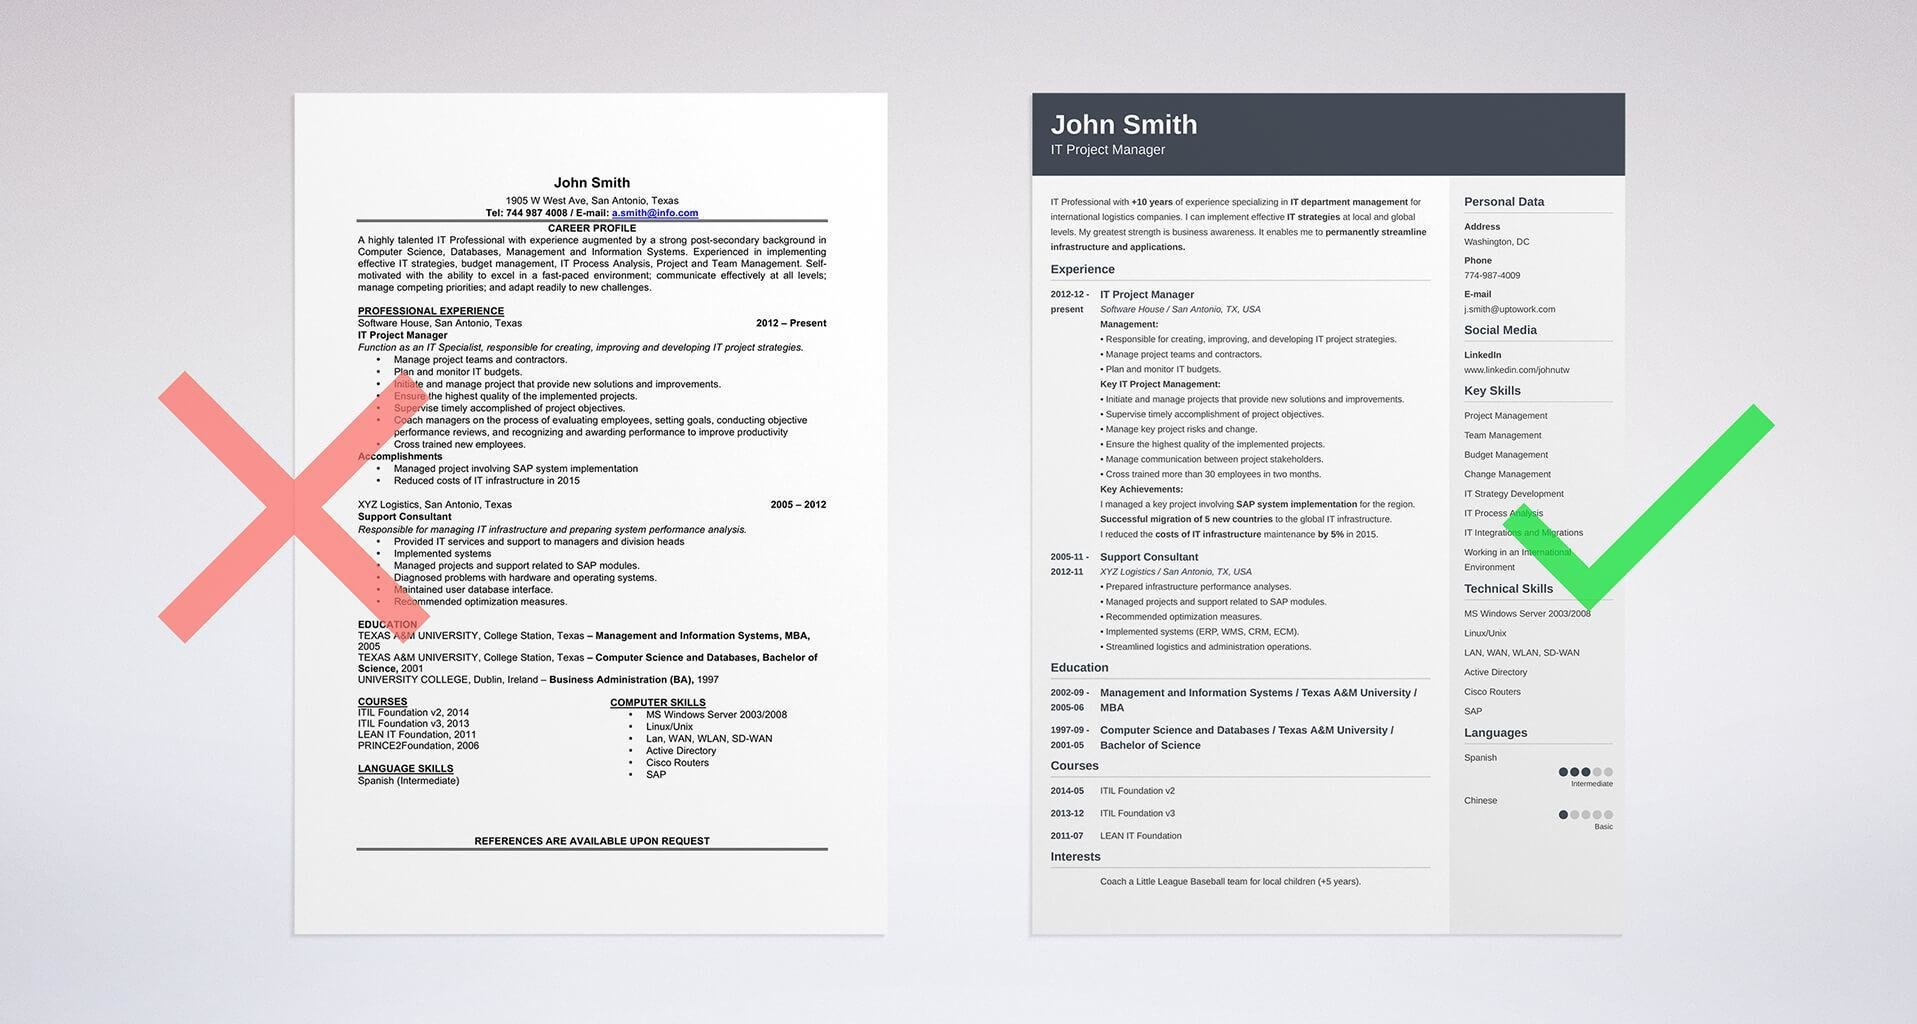 best resume format professional samples most looking formats template services chicago Resume Most Professional Looking Resume